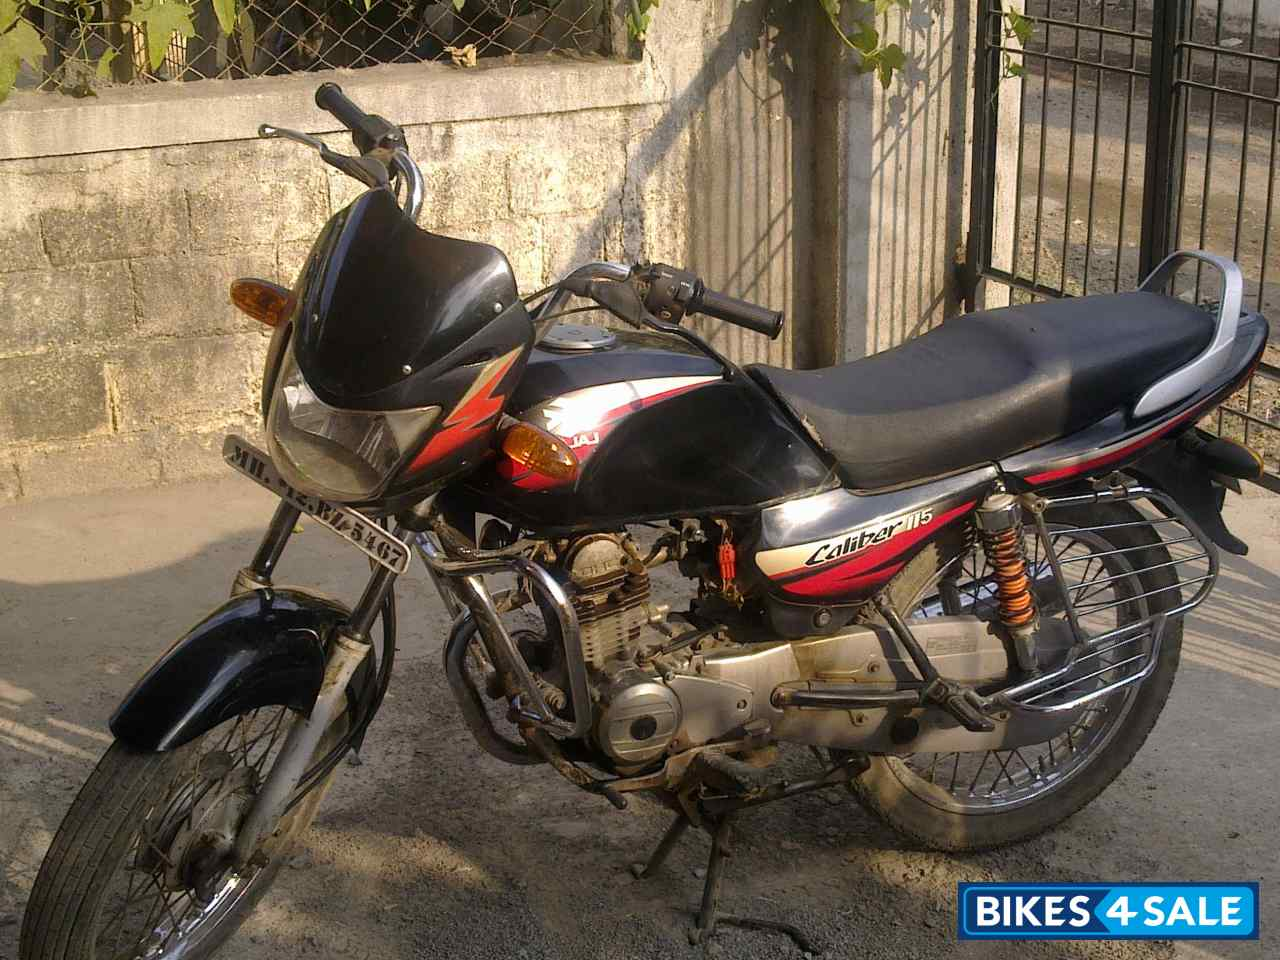 Used Bike for Sale